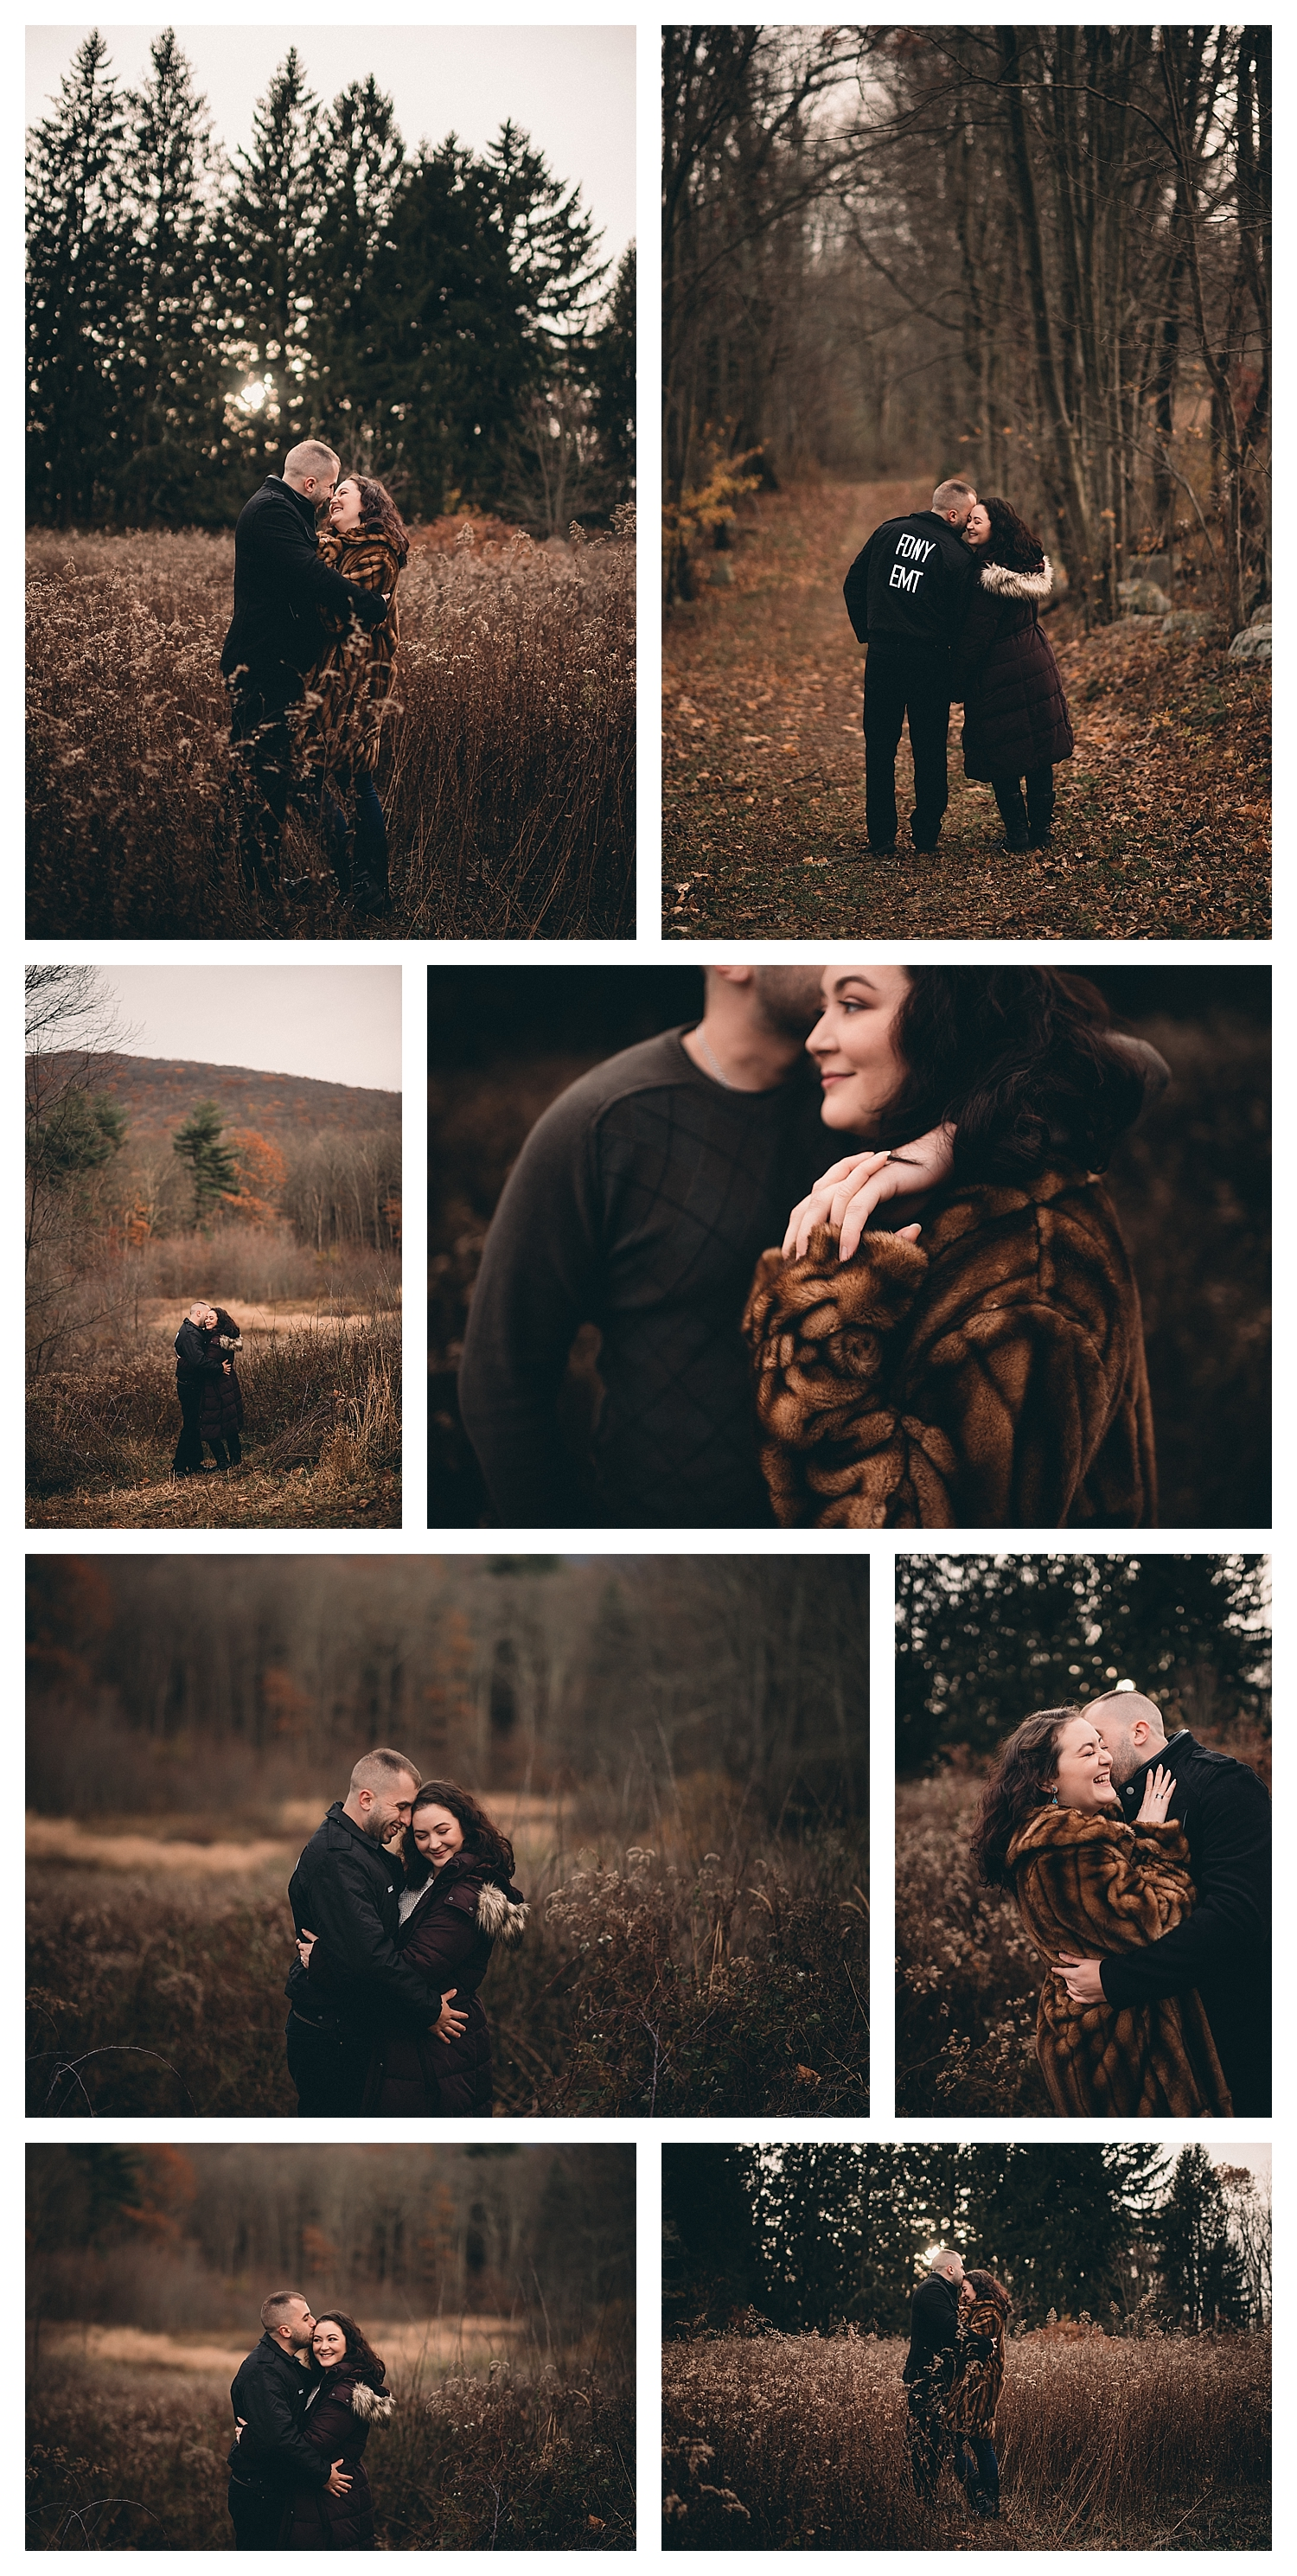 NEPA-Scranton-wedding-engagement-photographer-in-Philadelphia-PA-Central-PA_0311.jpg